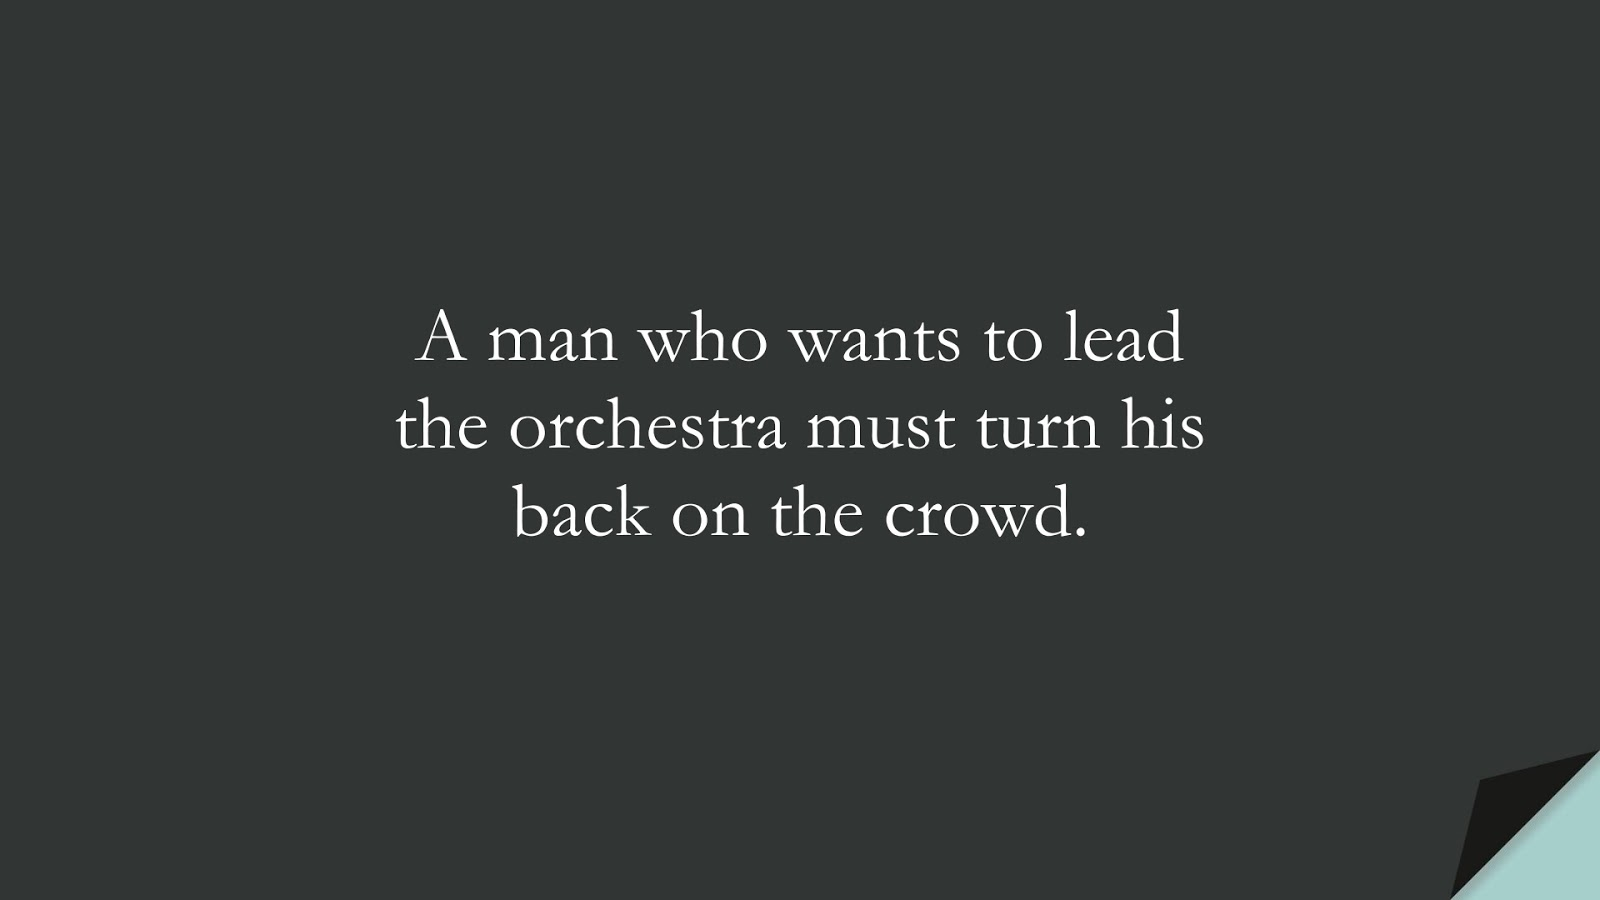 A man who wants to lead the orchestra must turn his back on the crowd.FALSE